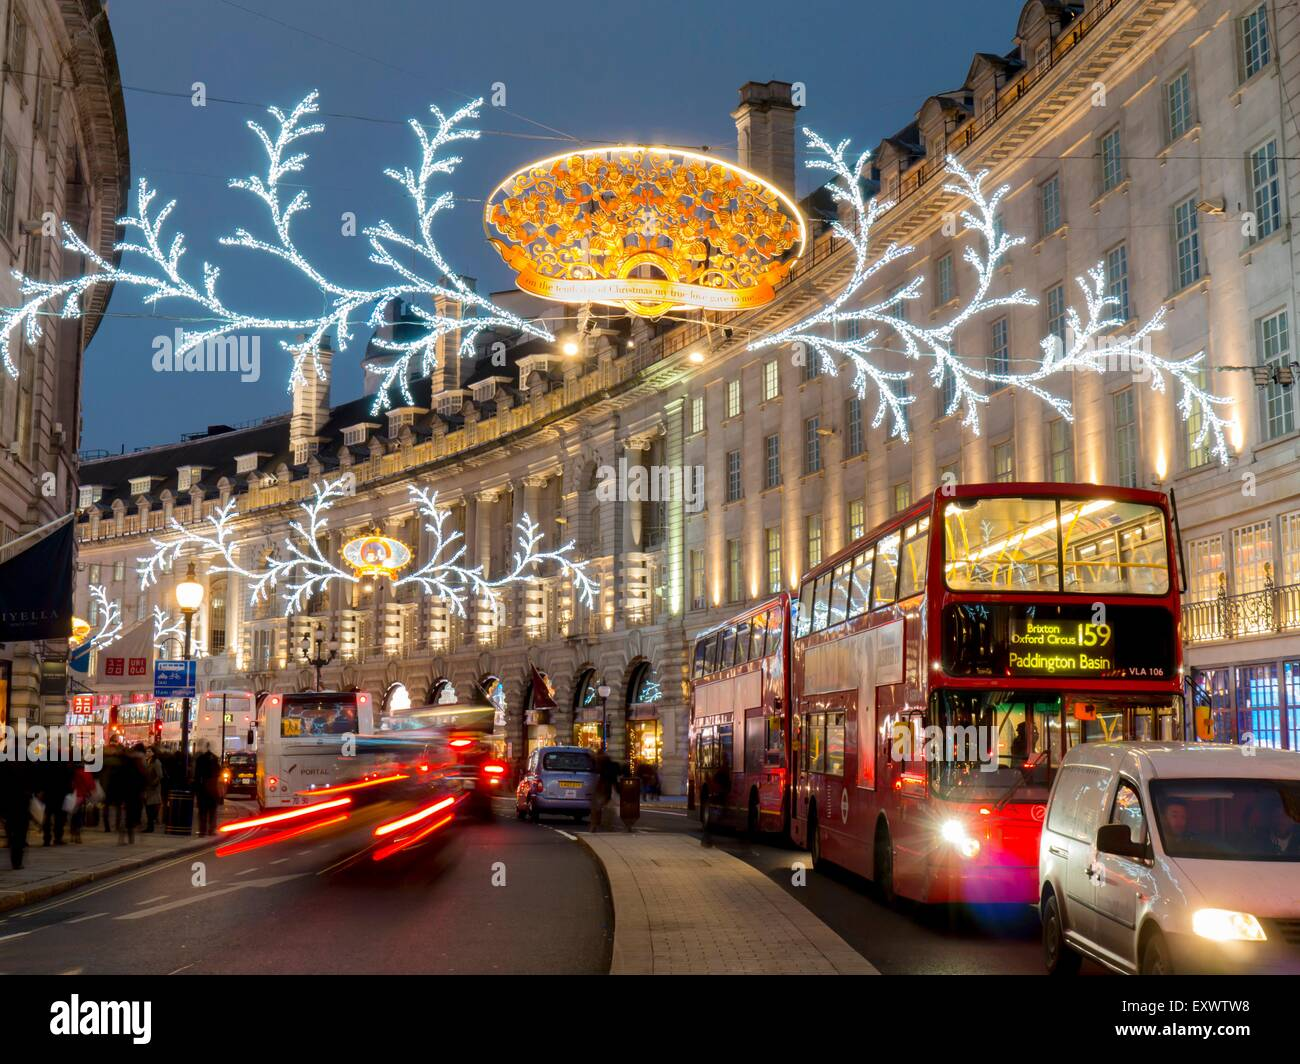 London At Christmas Time.Regent Street At Christmas Time London England Uk Stock